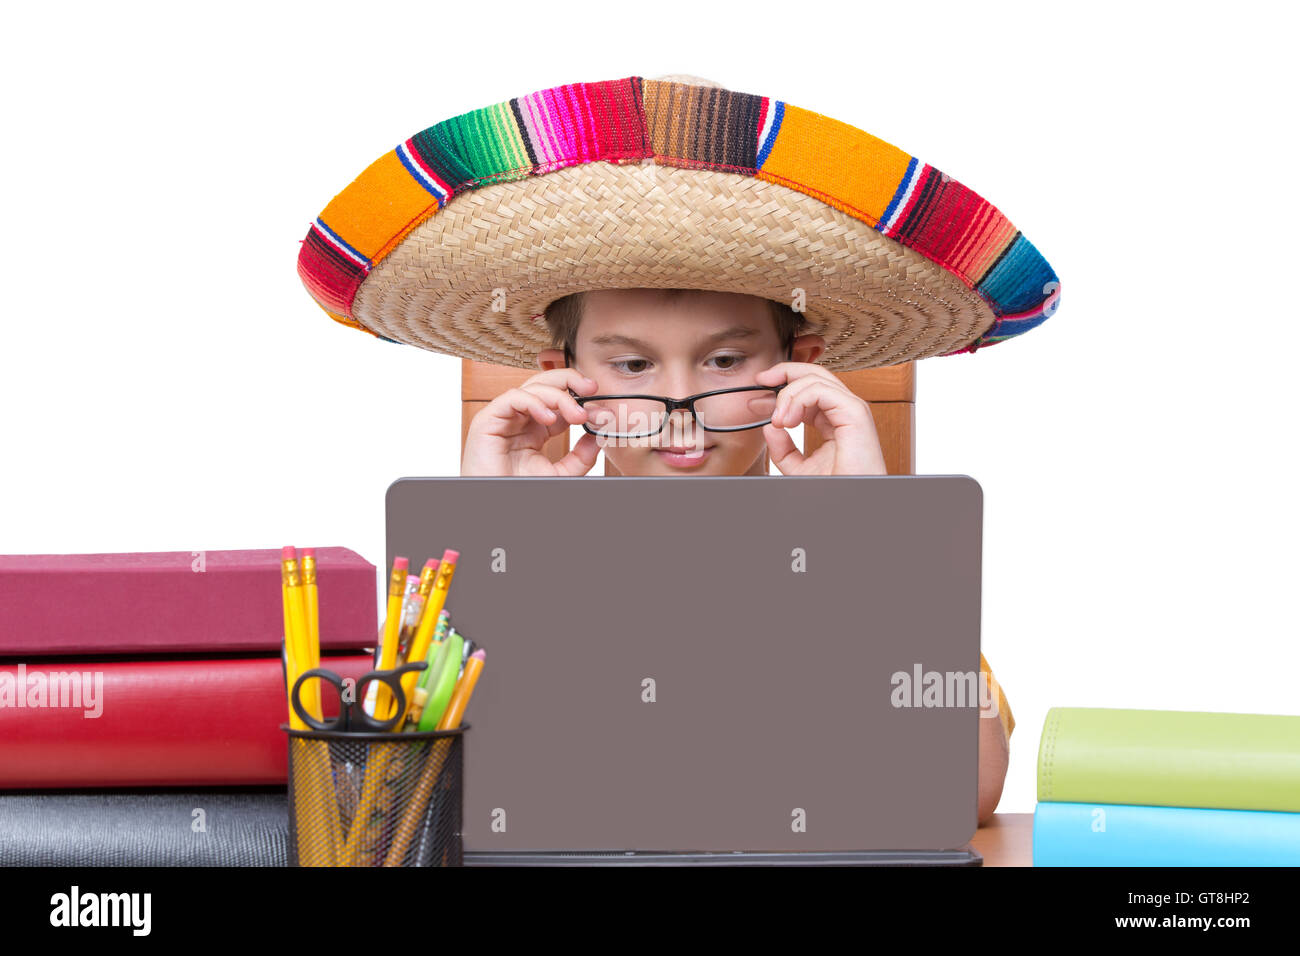 Young Boy Wearing Eyeglasses and Colorful Mexican Sombrero Hat Looking Down  at Laptop Computer Screen While Sitting at Desk Surr 6e6b013eeb6